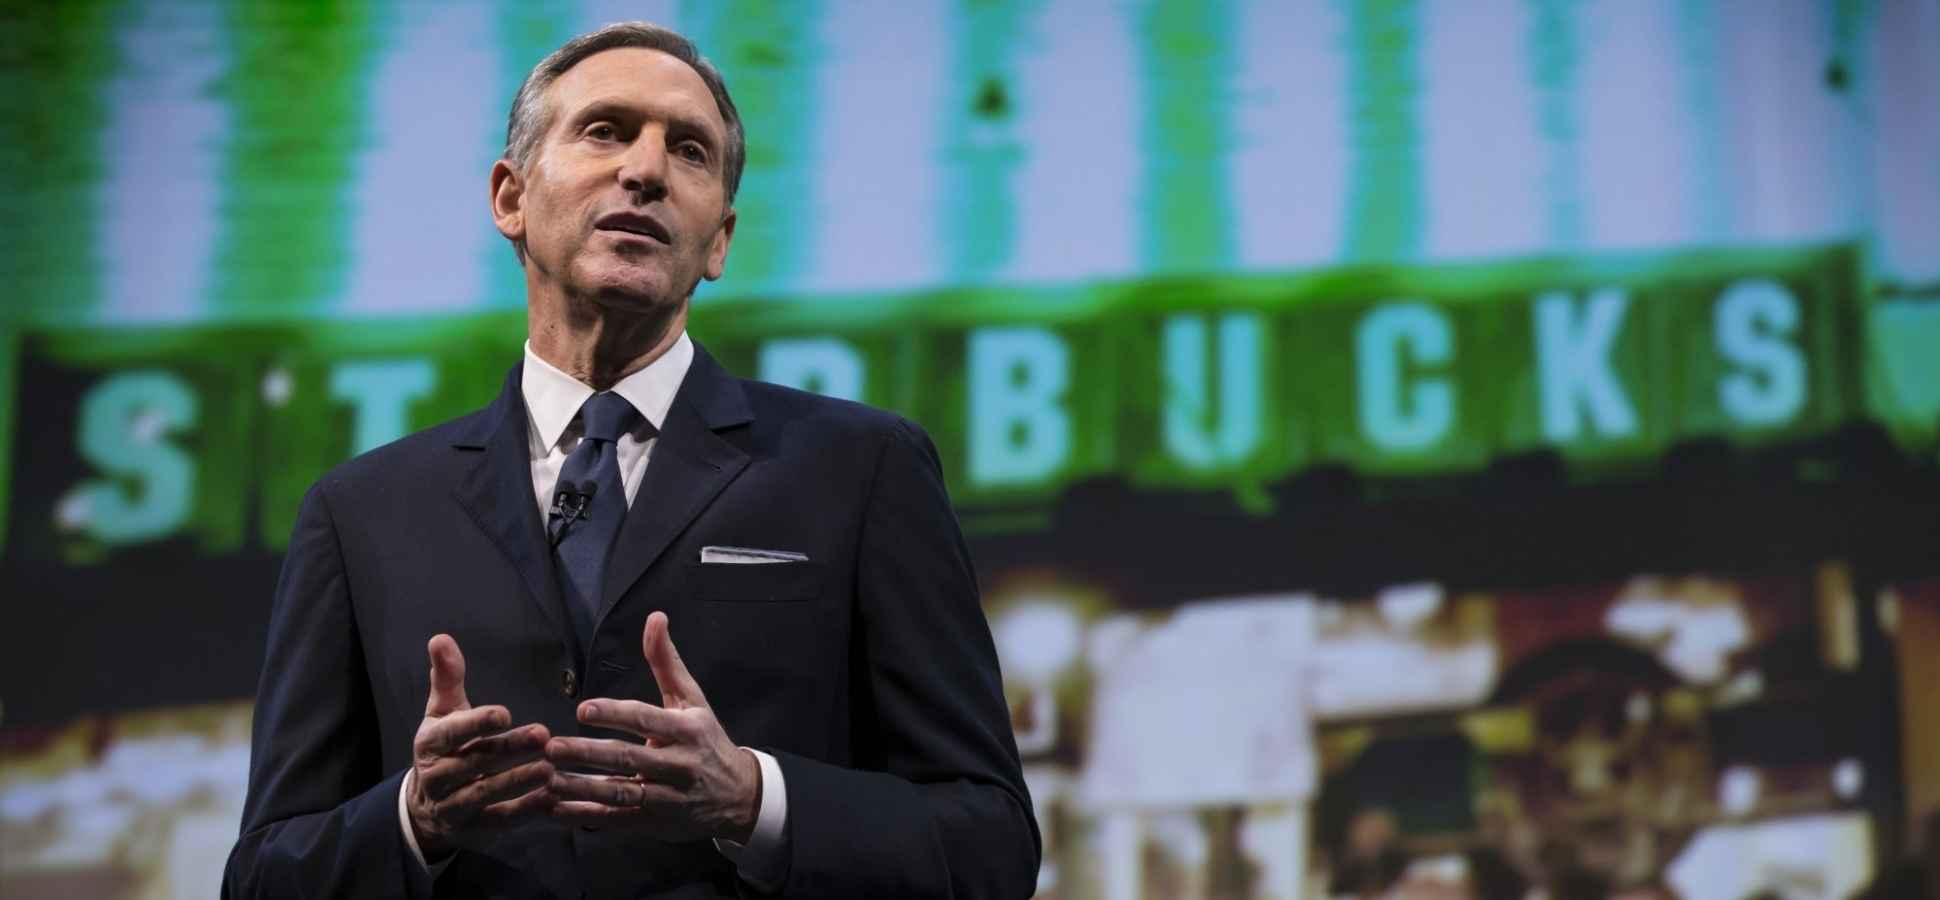 Starbucks' Howard Schultz Just Gave Excellent Career Advice by Asking These 3 Questions